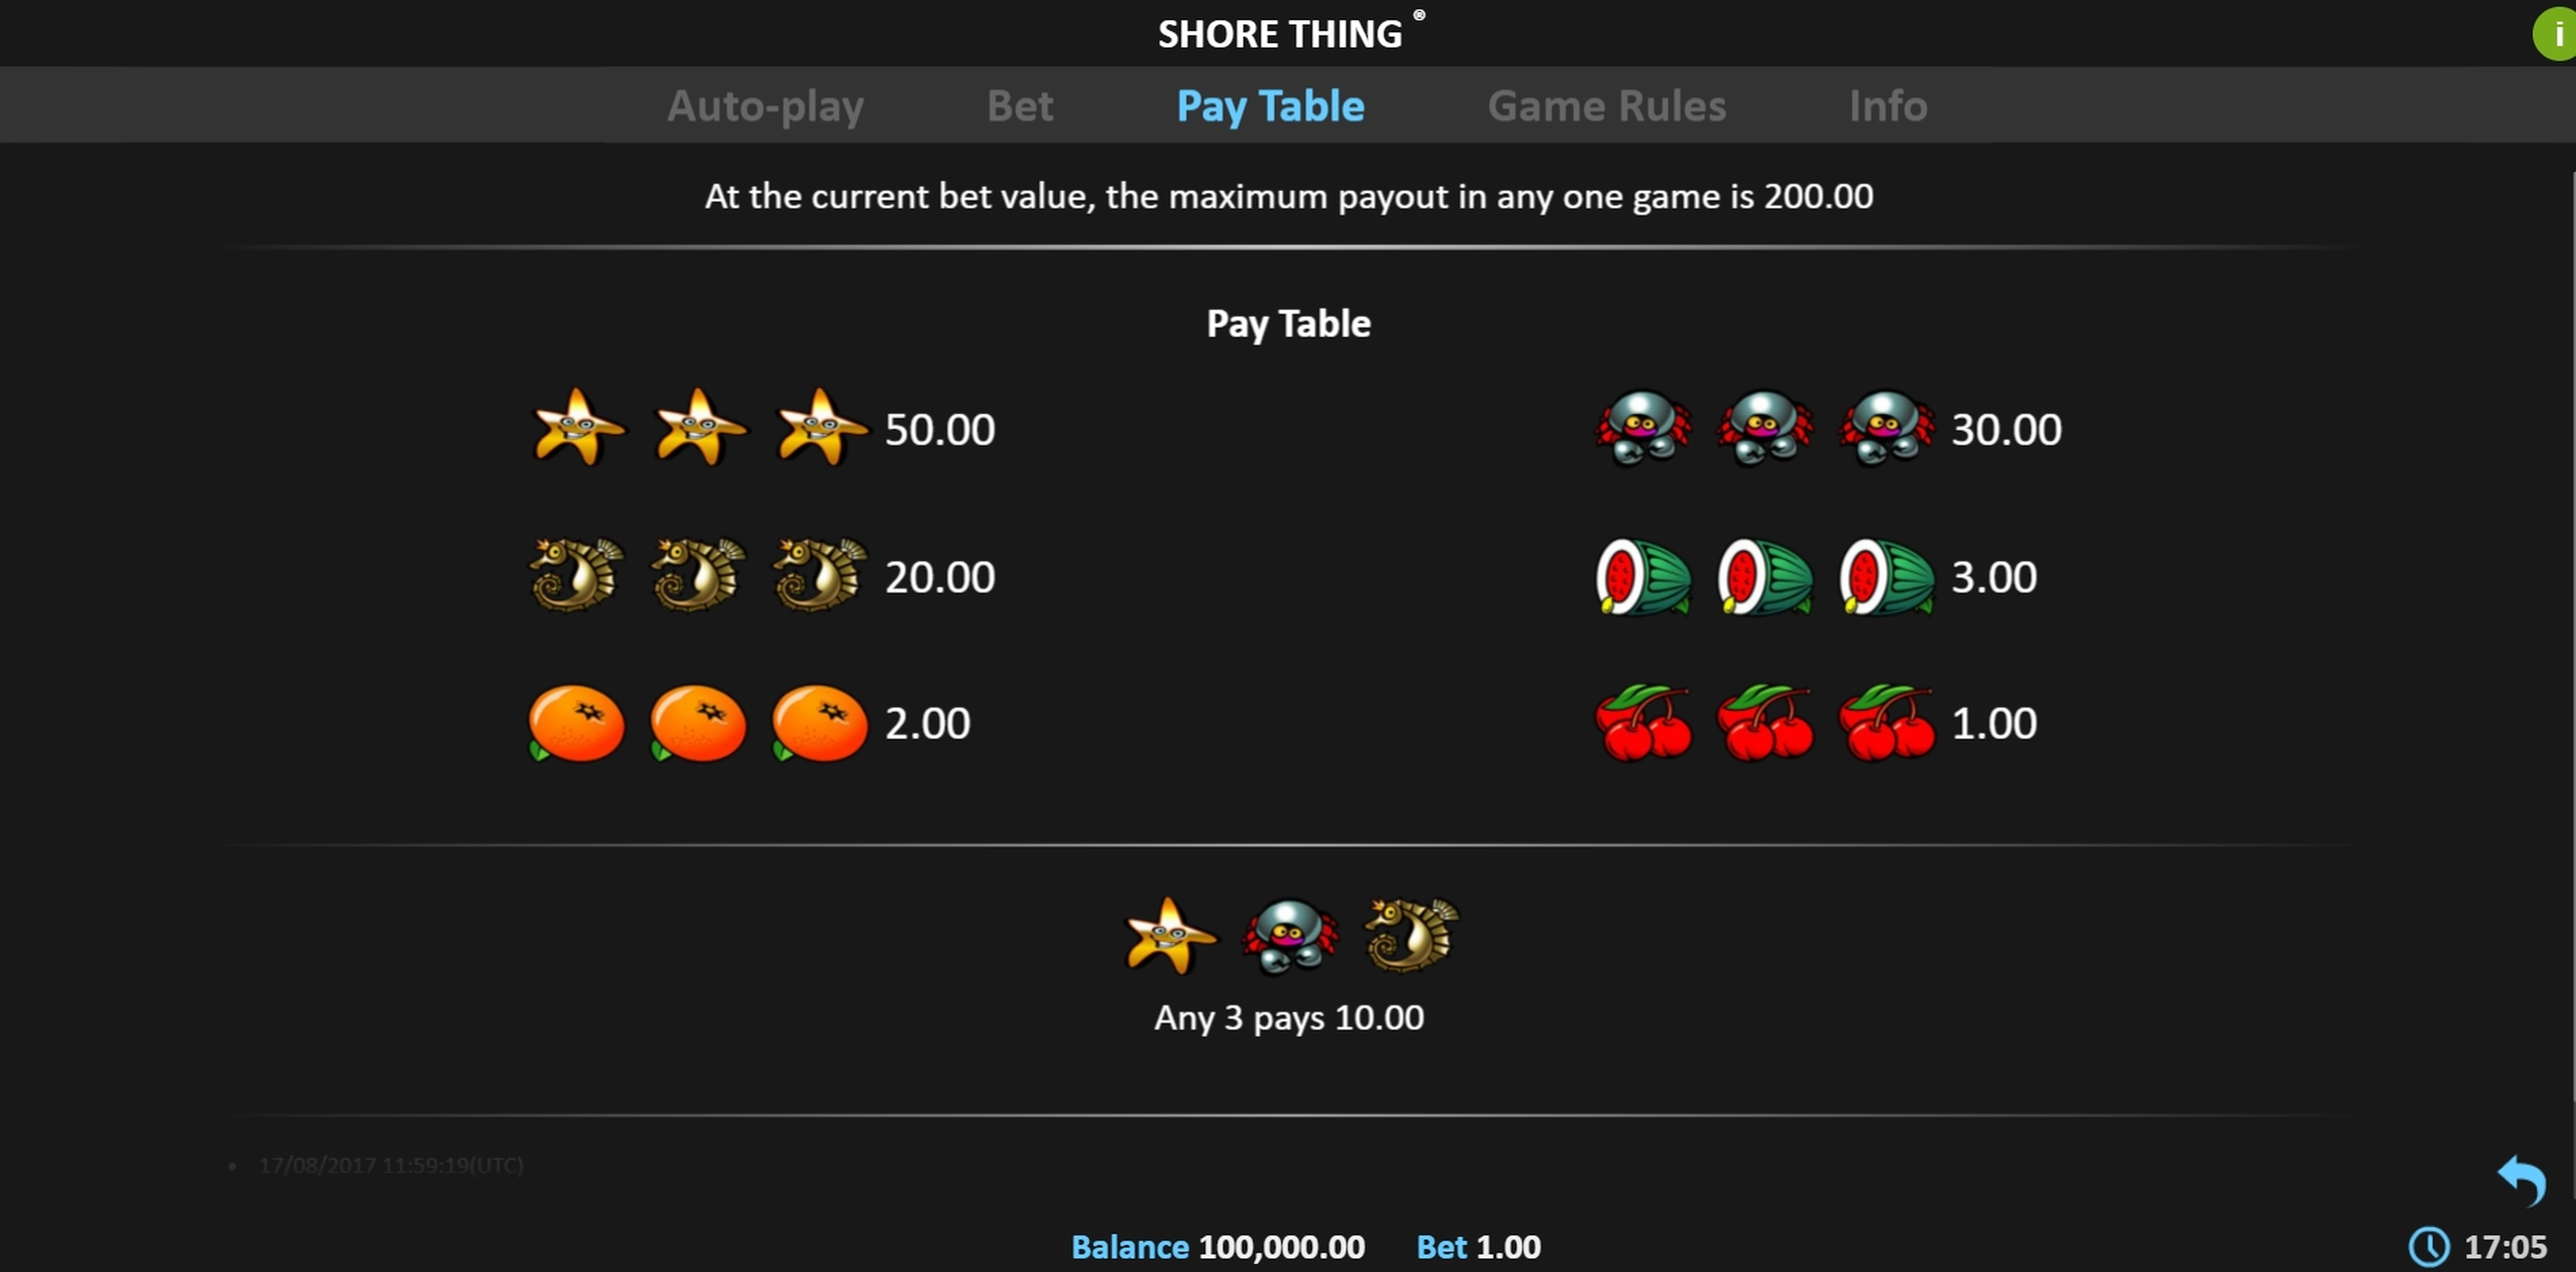 Info of Shore Thing Pull Tab Slot Game by Realistic Games